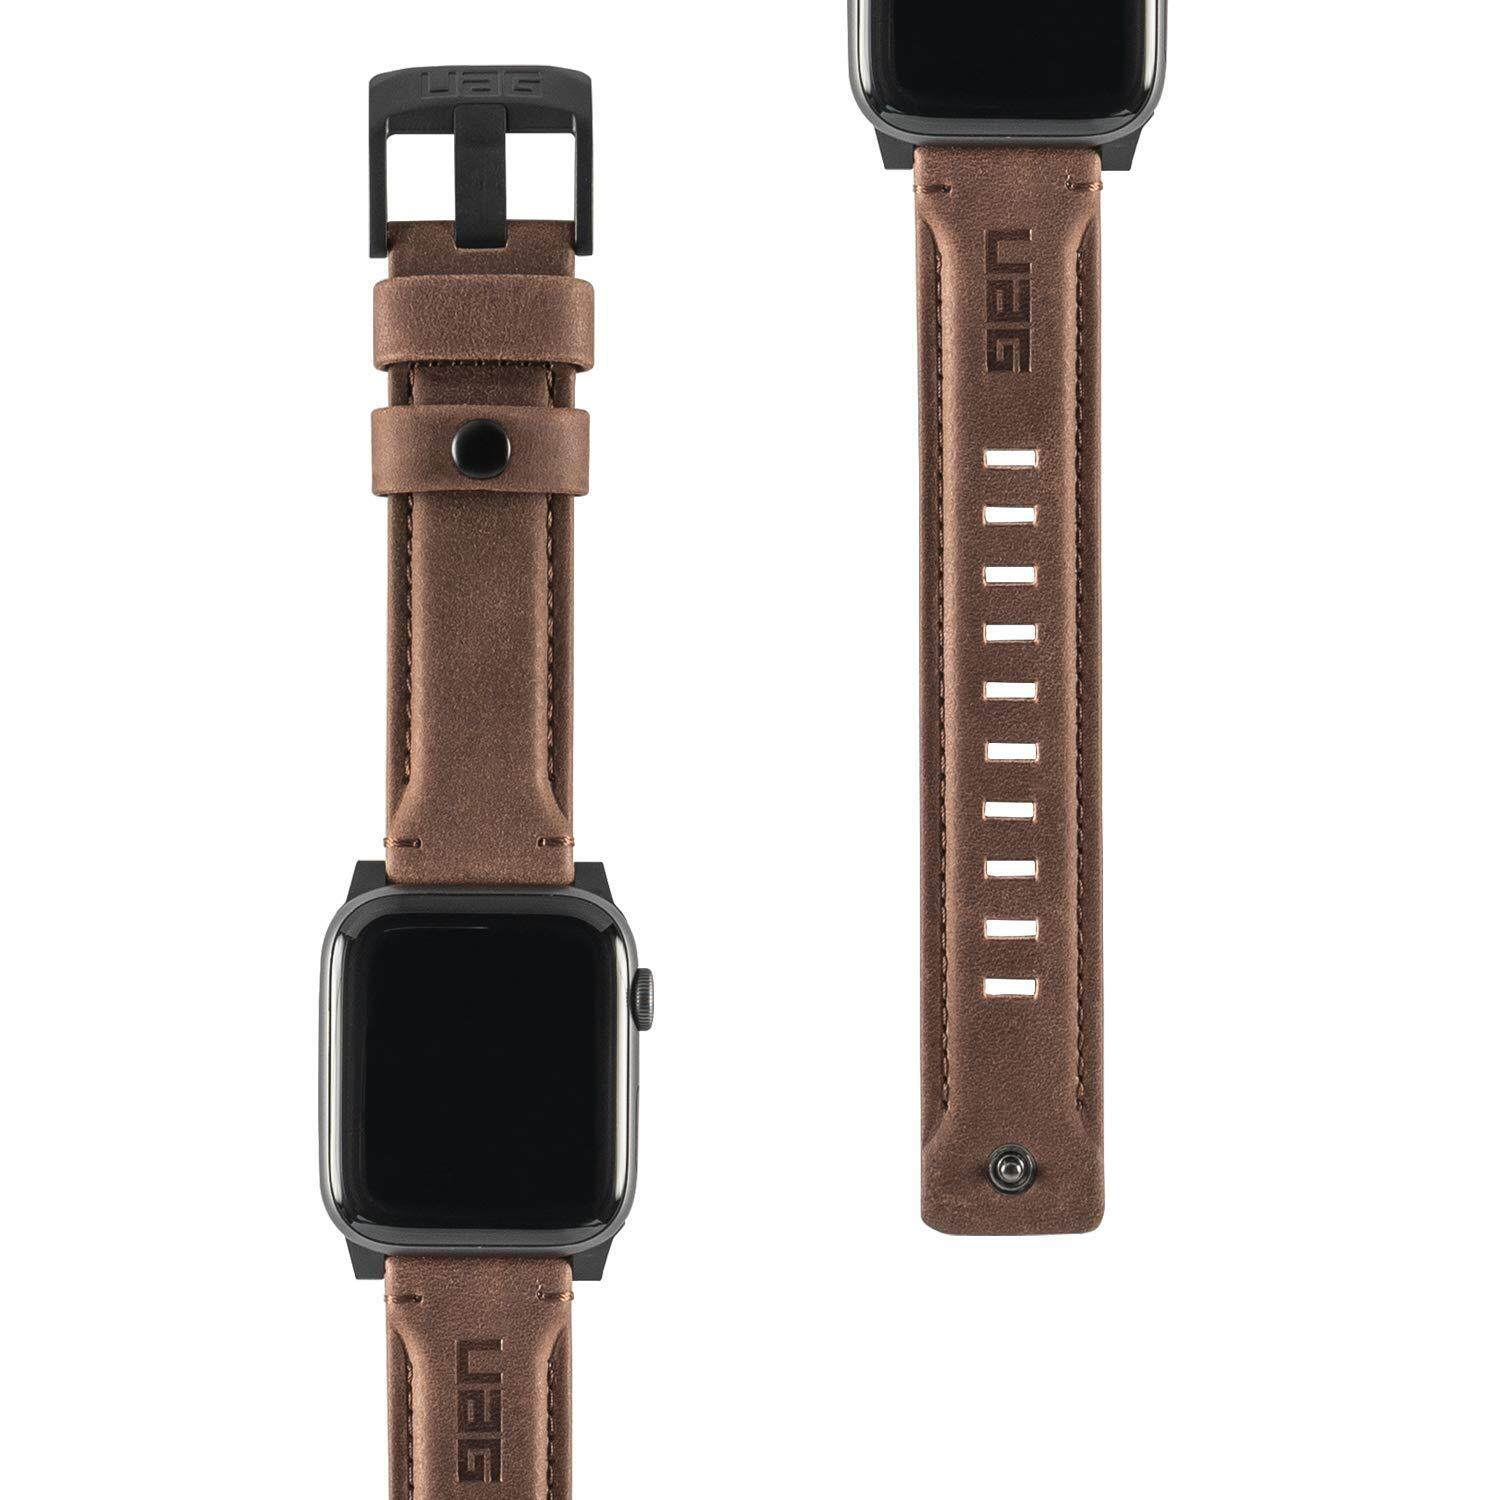 Original UAG Leather Strap for Apple Watch 40mm & 38mm, Series 4/3/2/1, Leather Brown